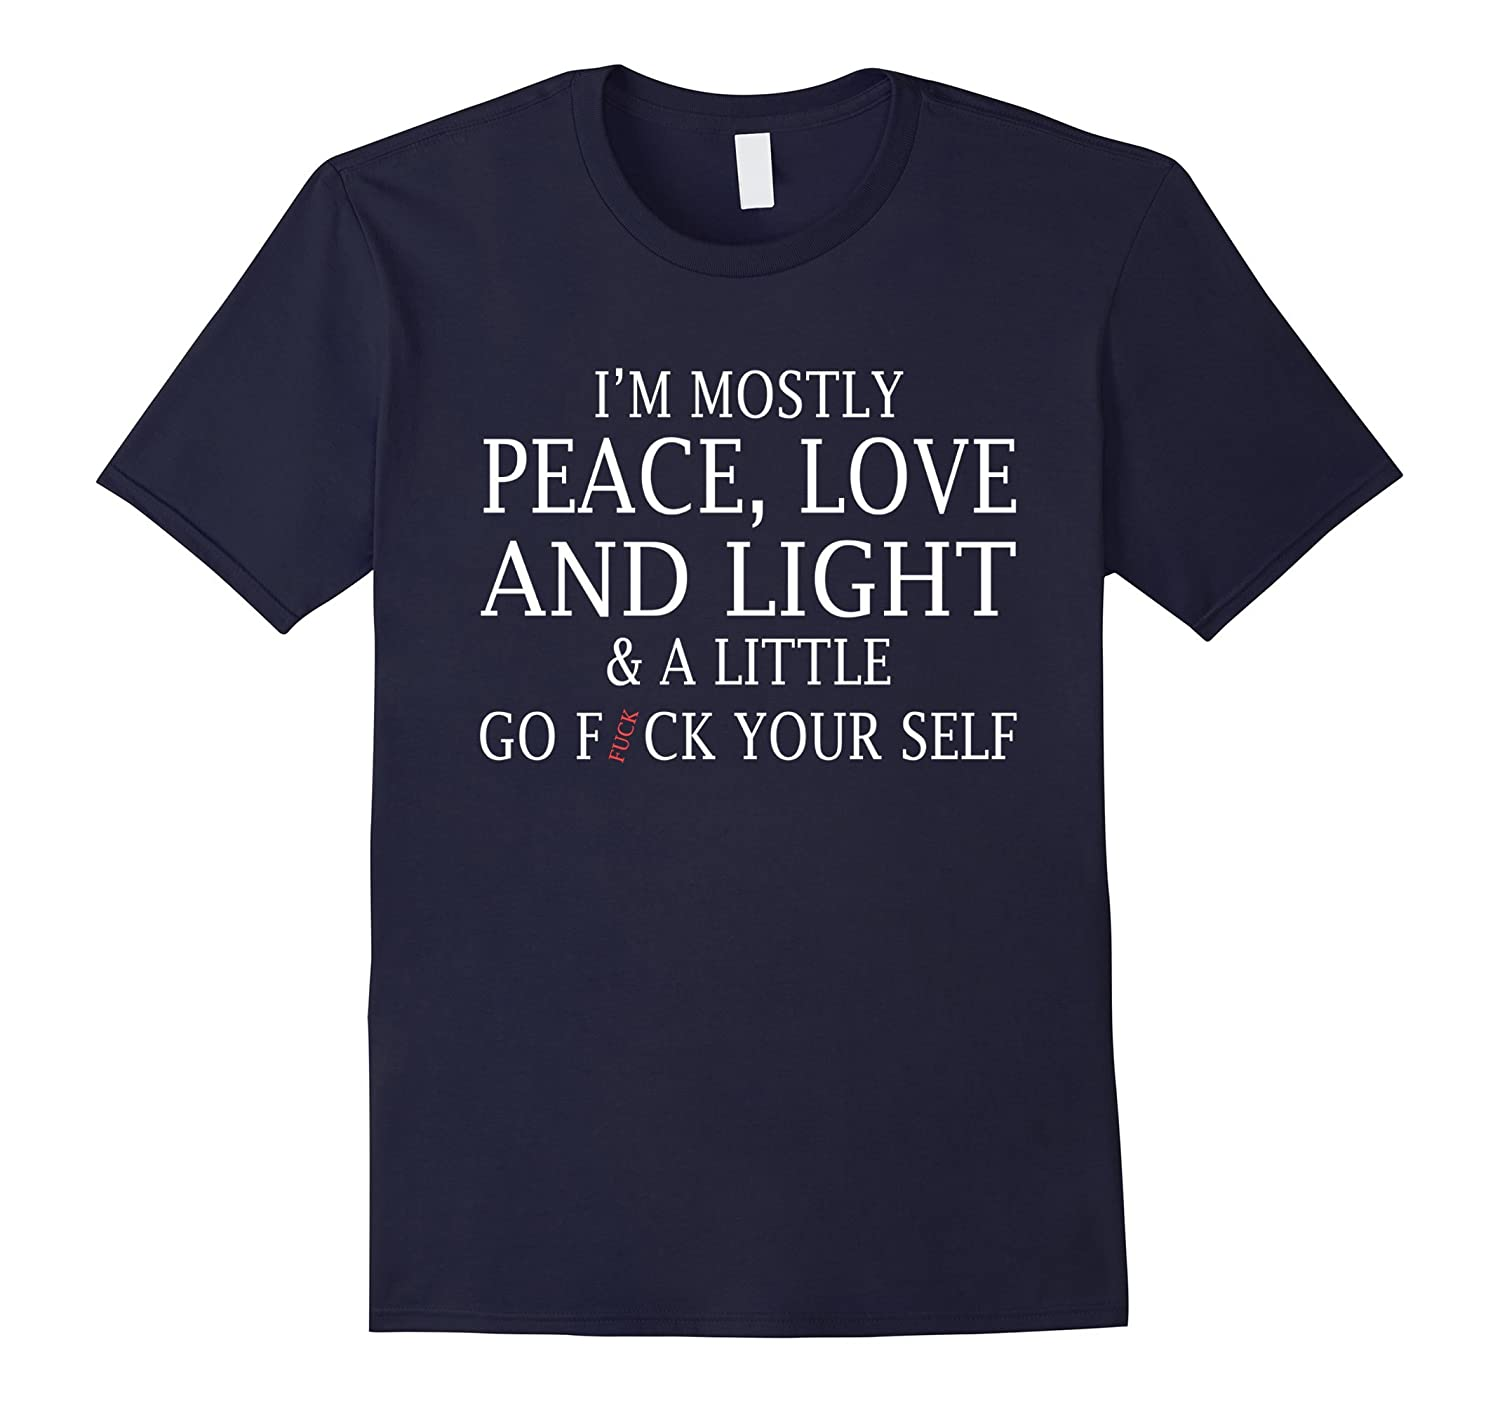 Im mostly peace love and light and a little T-shirt-Vaci